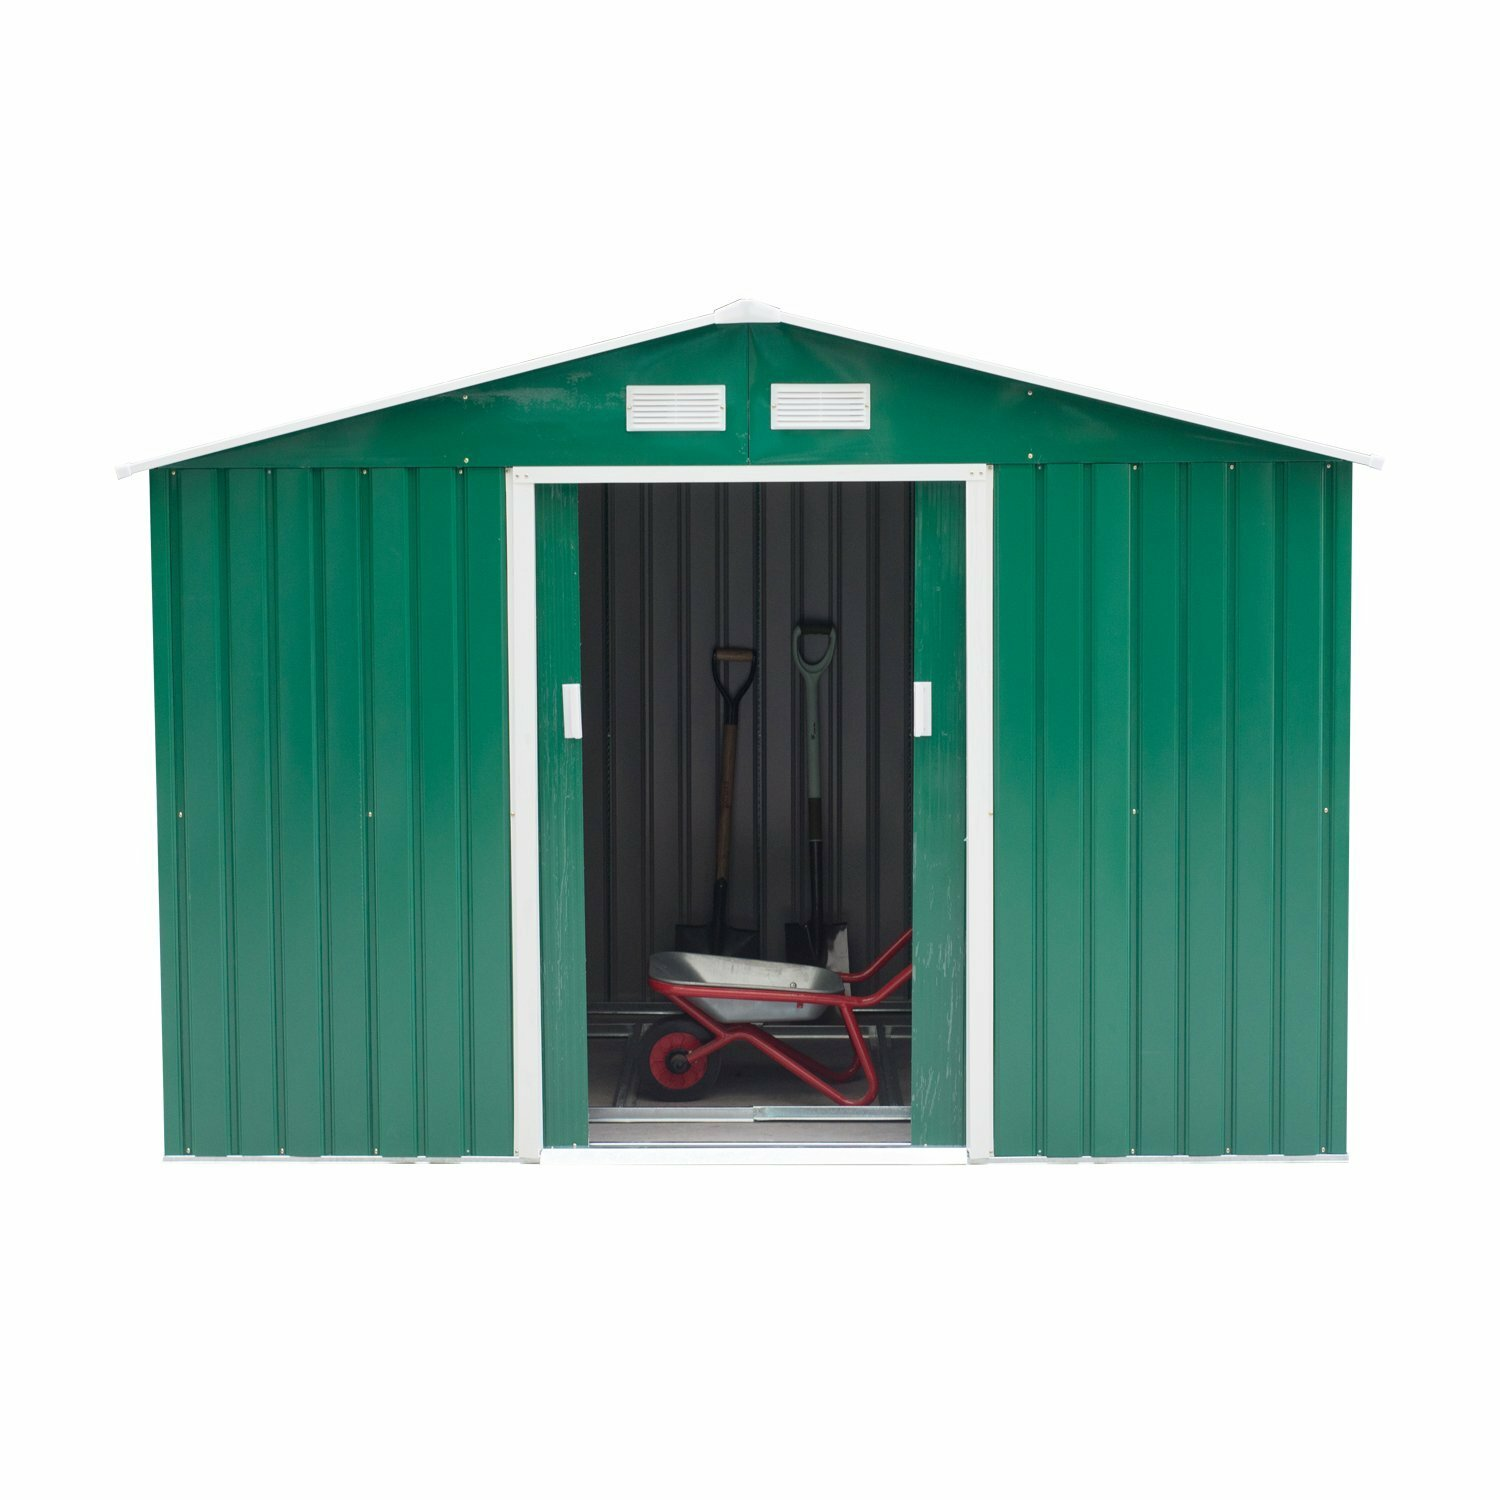 Outsunny 9 x 6 metal storage shed wayfair uk for 9 x 9 garden shed